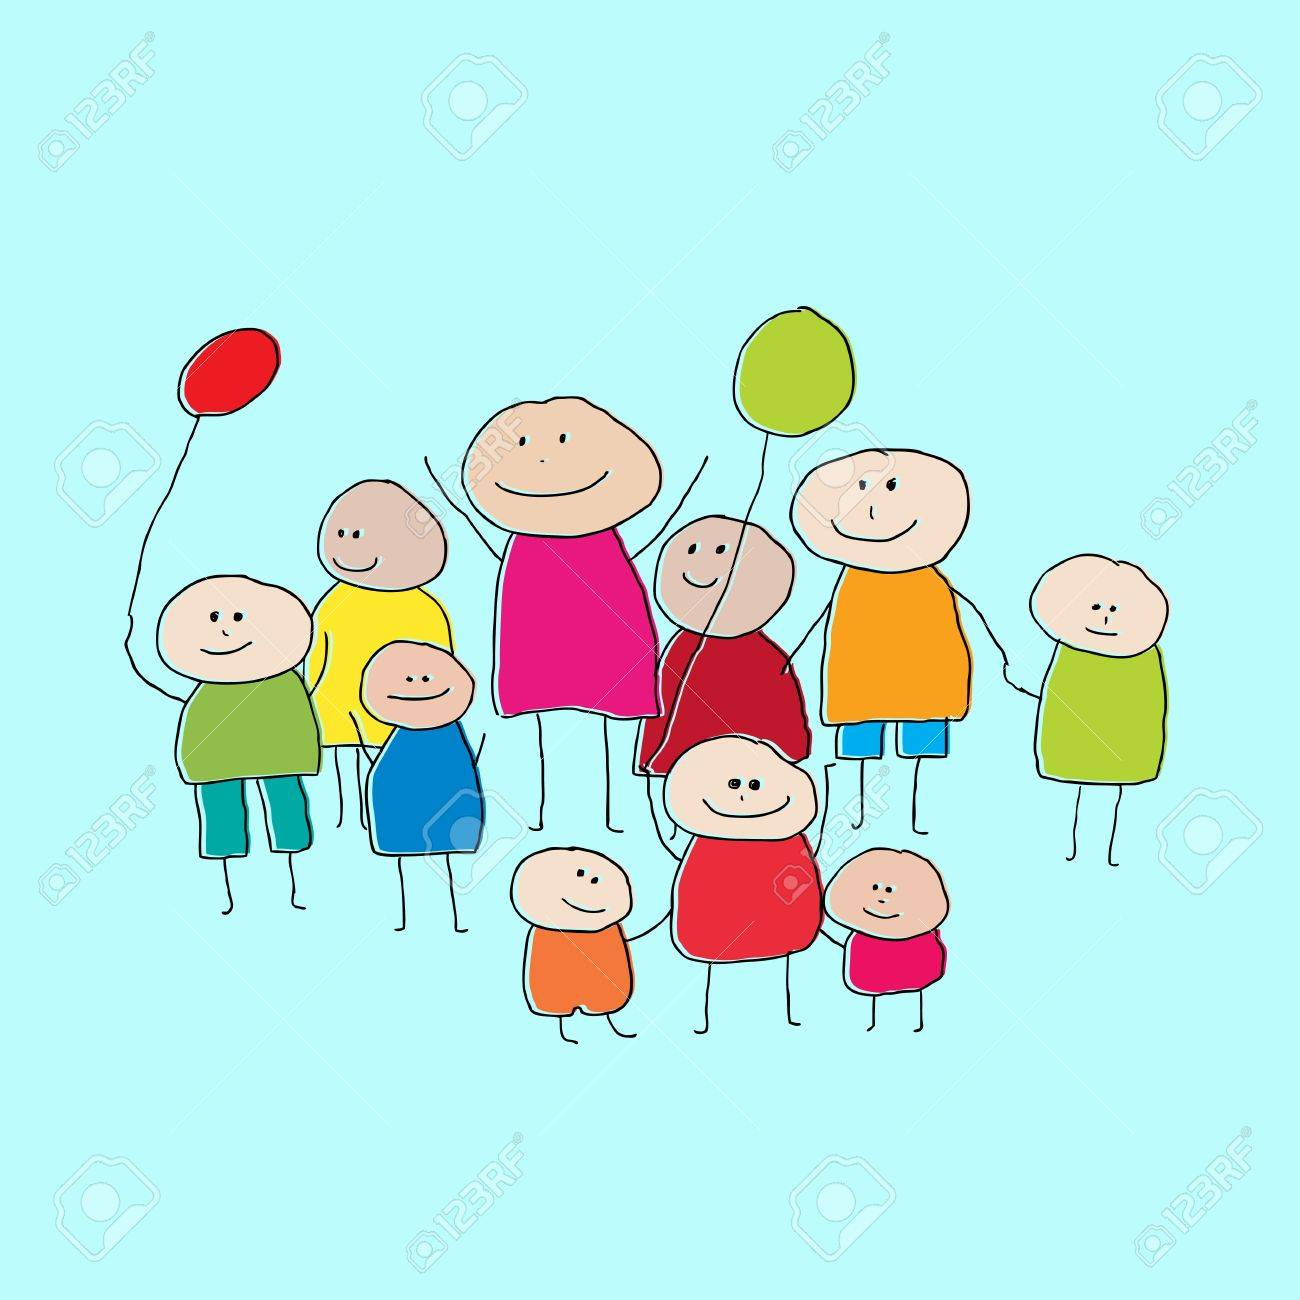 Drawing of a group of people or big family with little children and balloons Stock Vector - 12759591